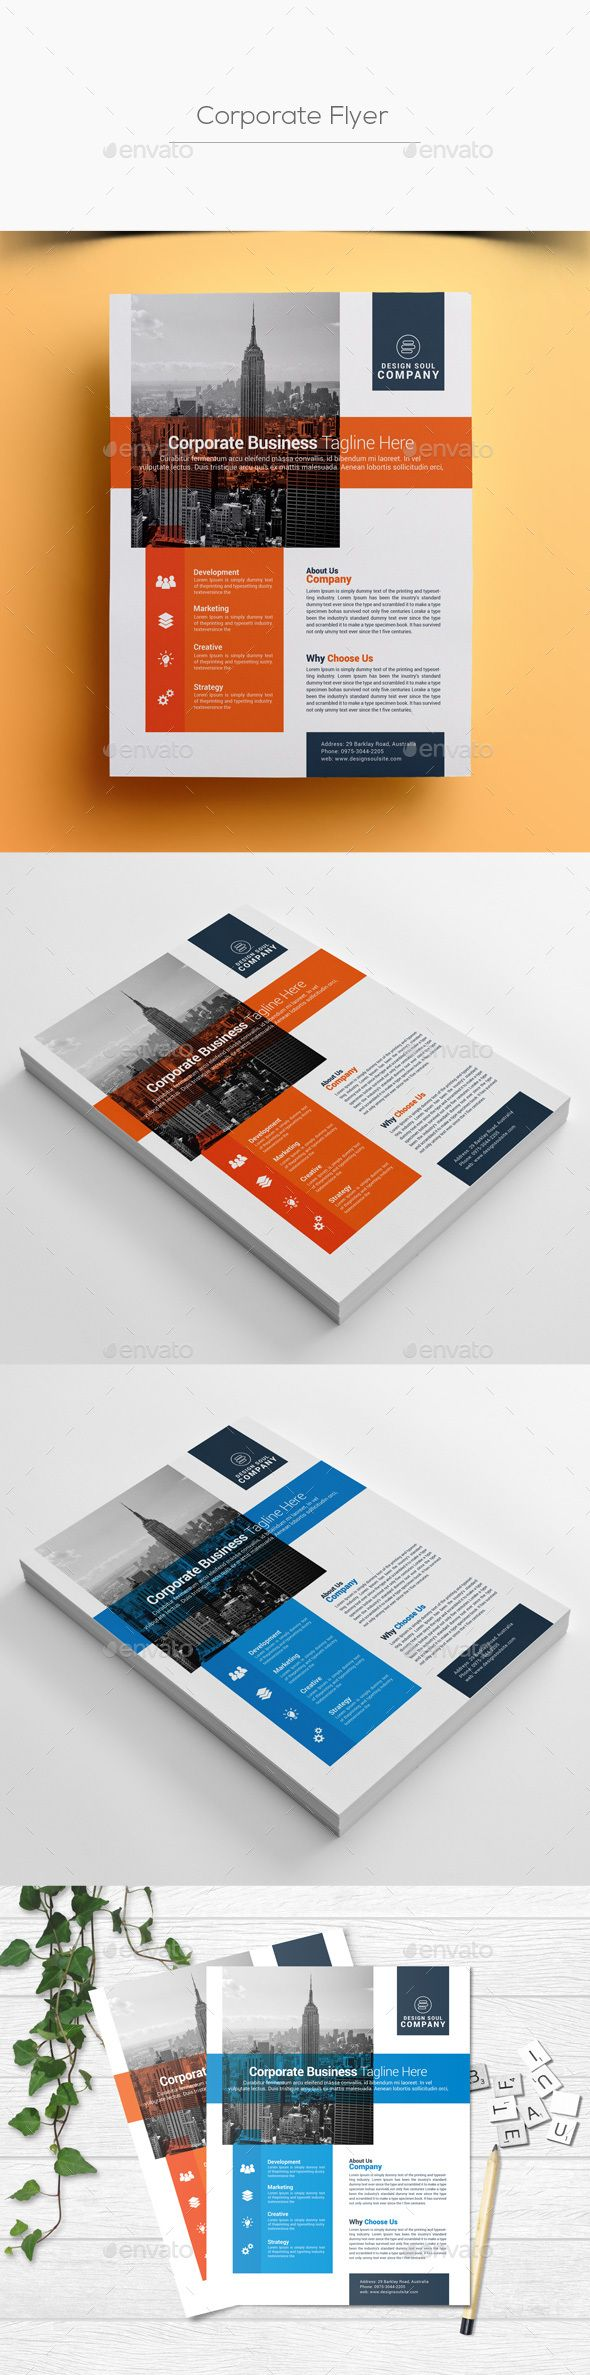 best ideas about advertising flyers photography corporate flyer